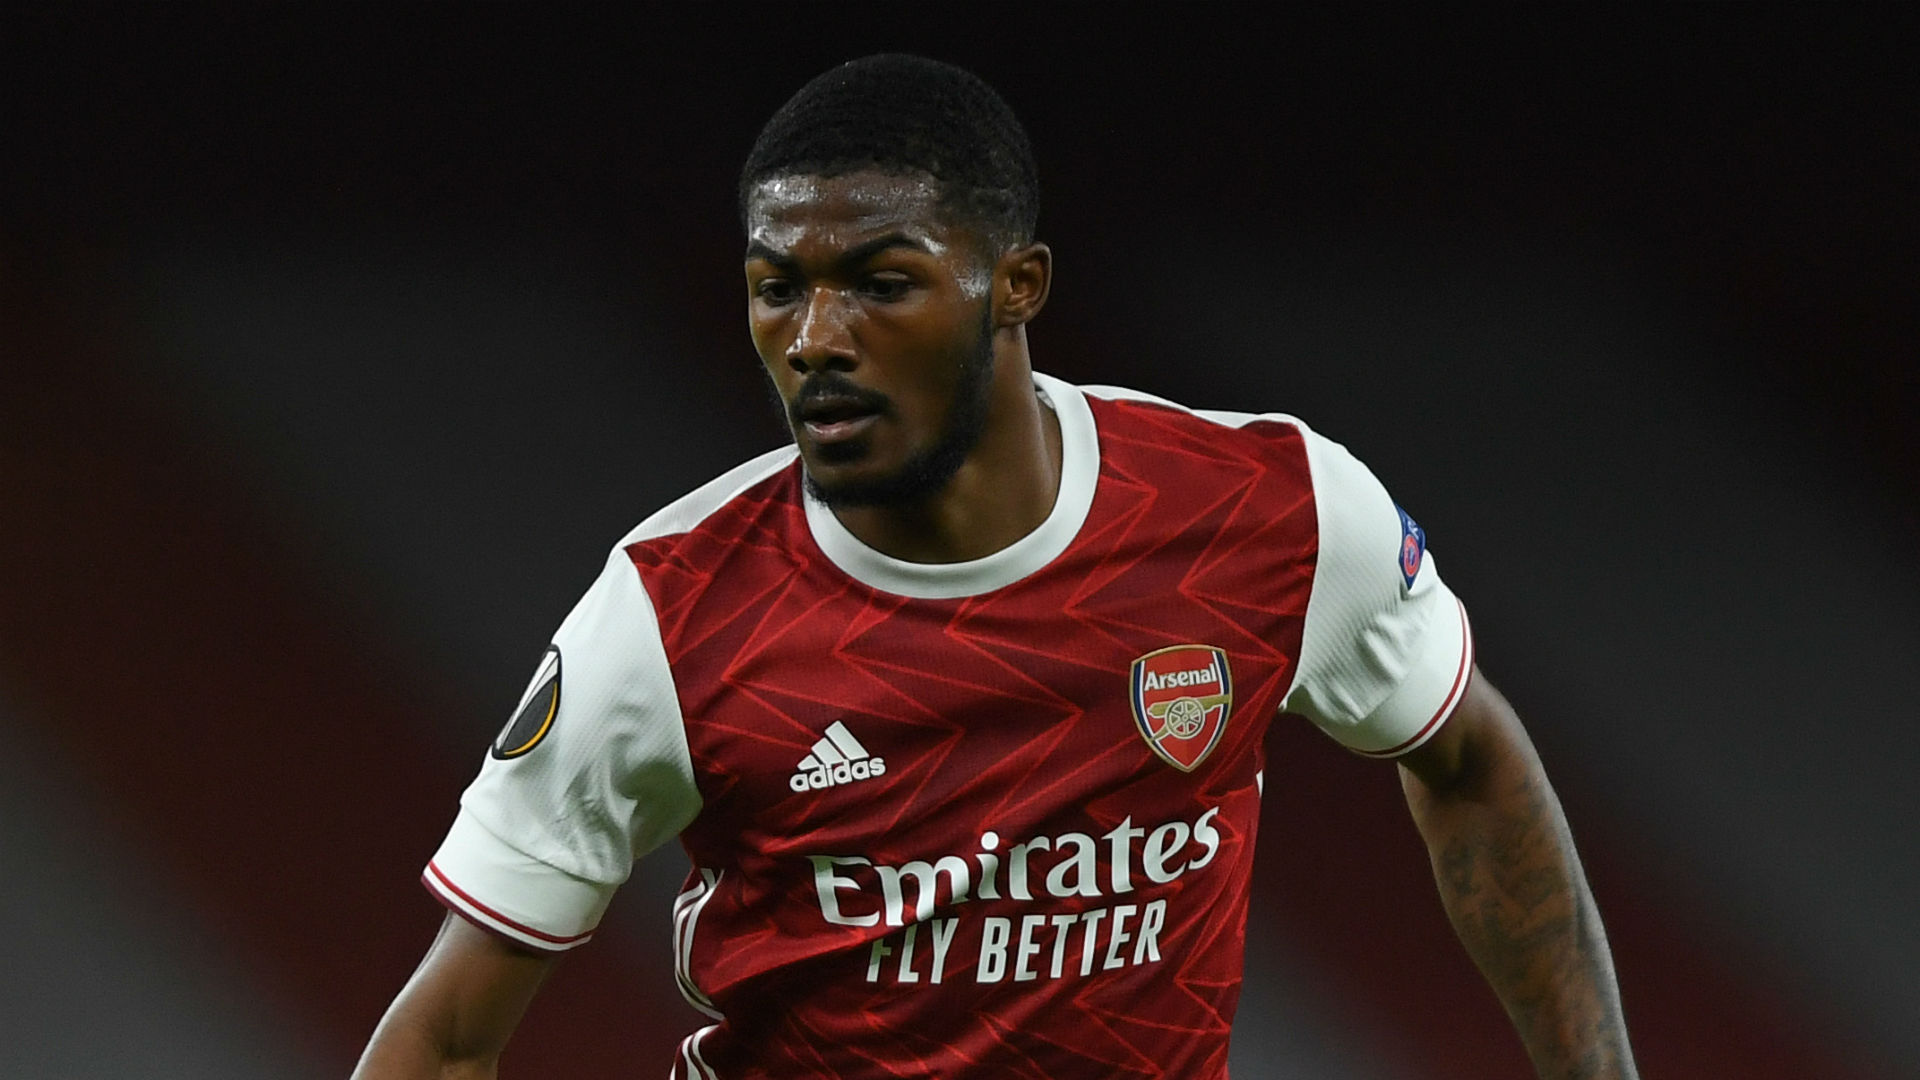 'Maitland-Niles no Partey but Arsenal are on charm offensive' - Arteta won't want to sell, claims Campbell